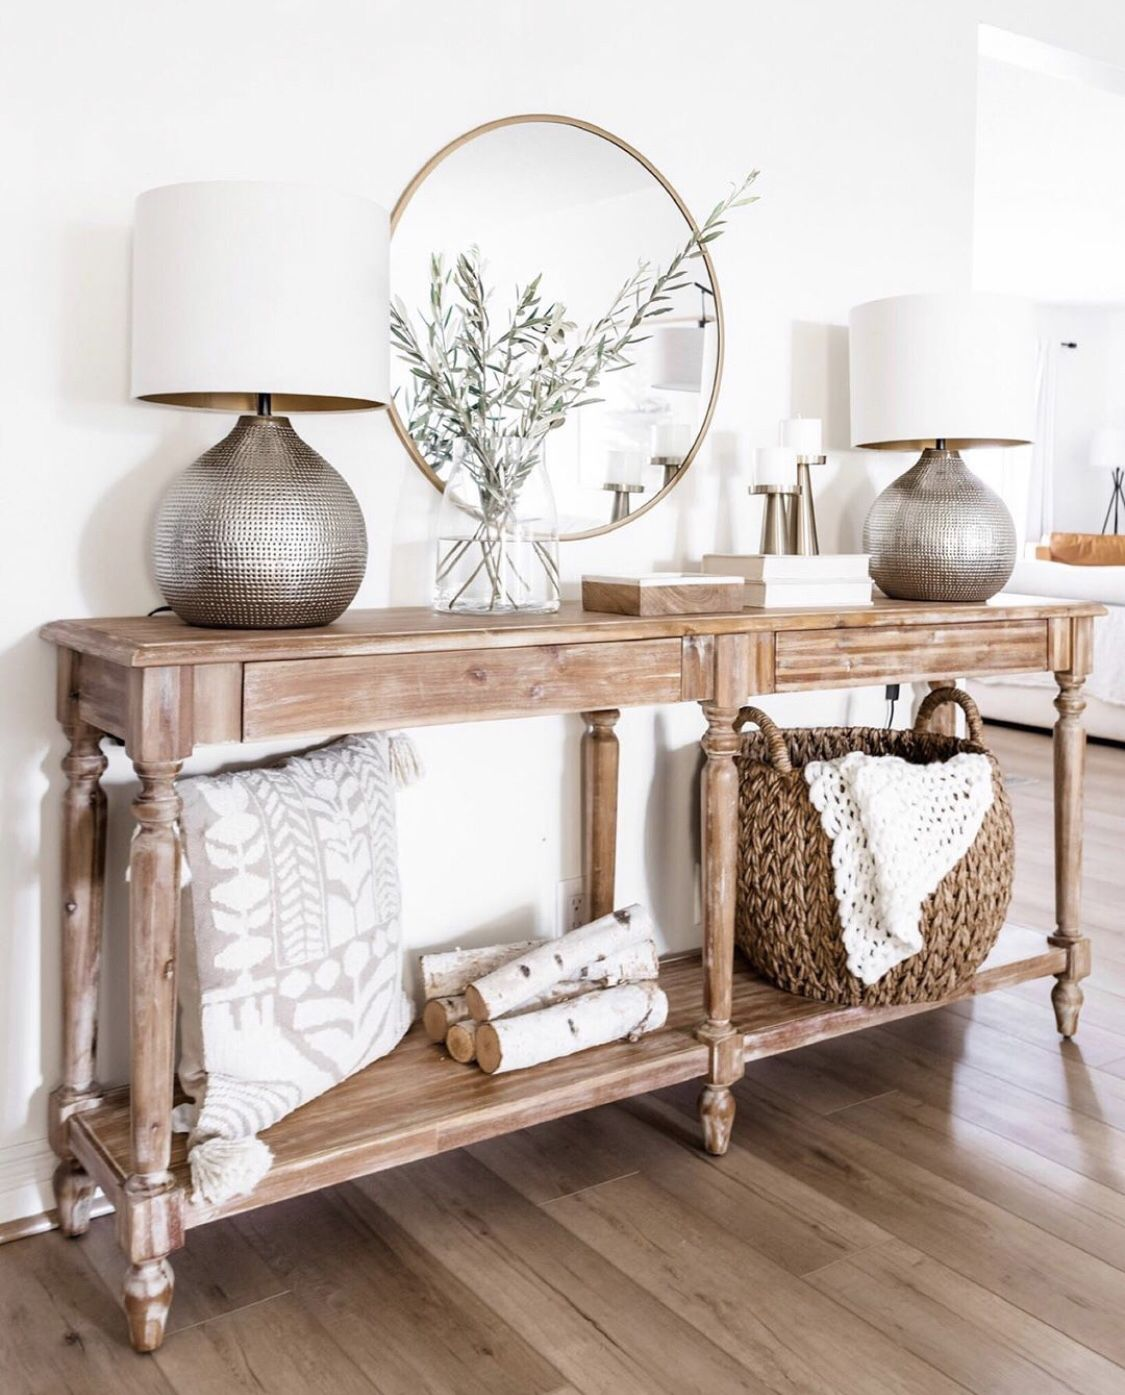 Set Of 2 Coffee Table Bookscoastal Shelf Decorstaging Etsy In 2020 Home Entrance Decor Entryway Table Decor Console Table Decorating